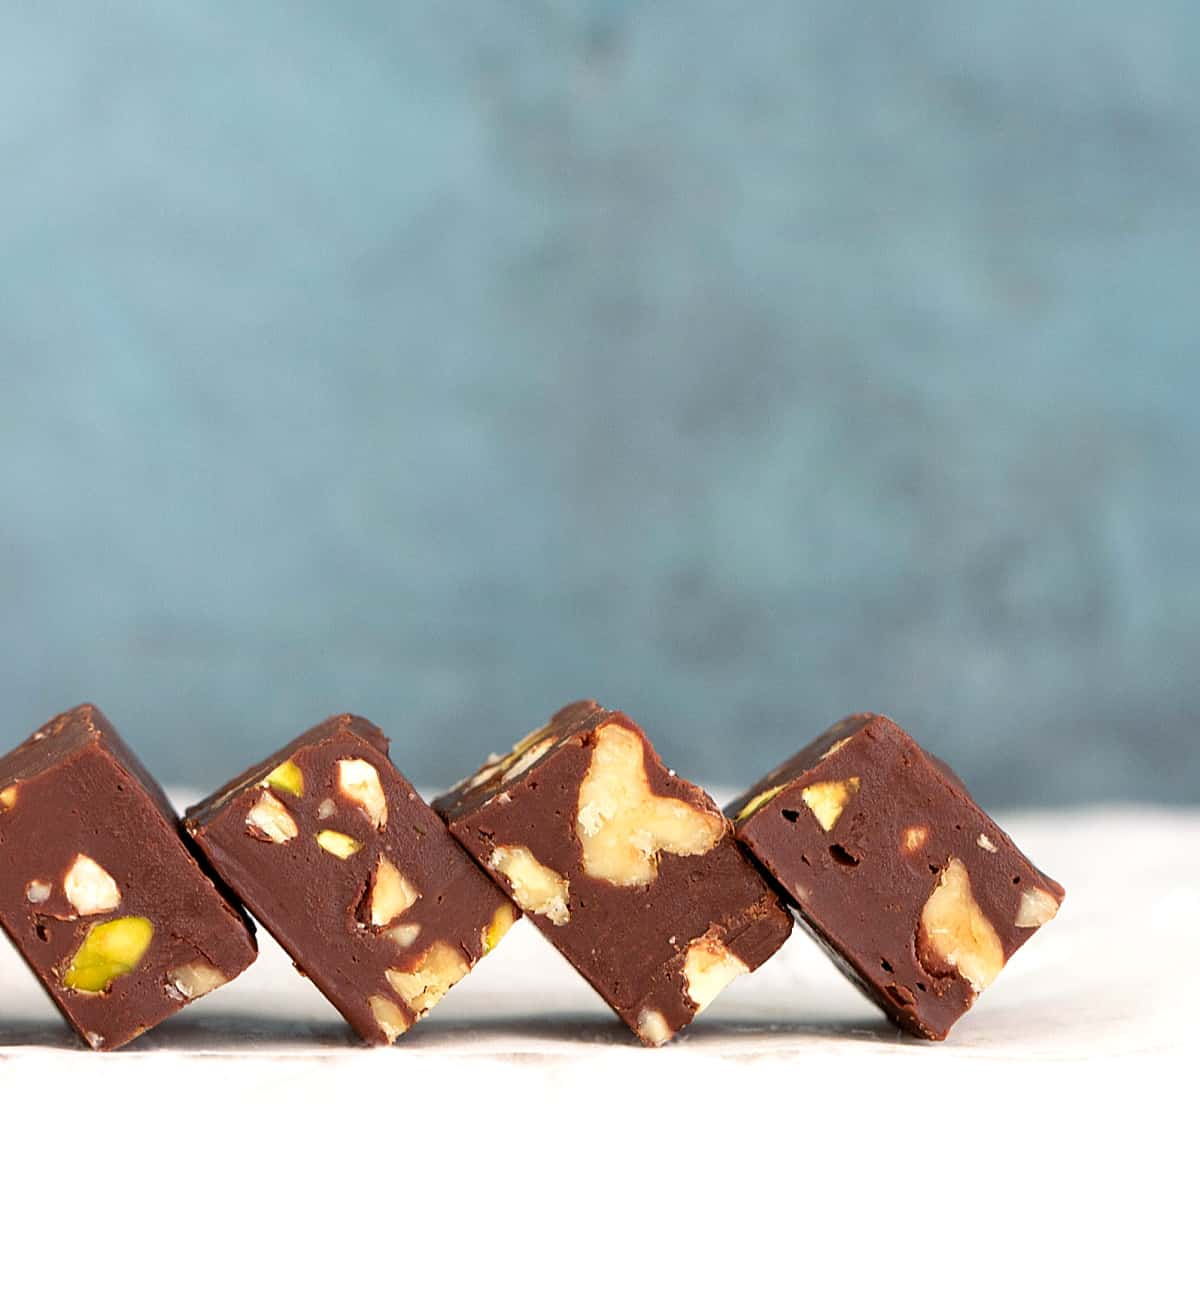 Row of chocolate fudge squares on a white surface and blueish background